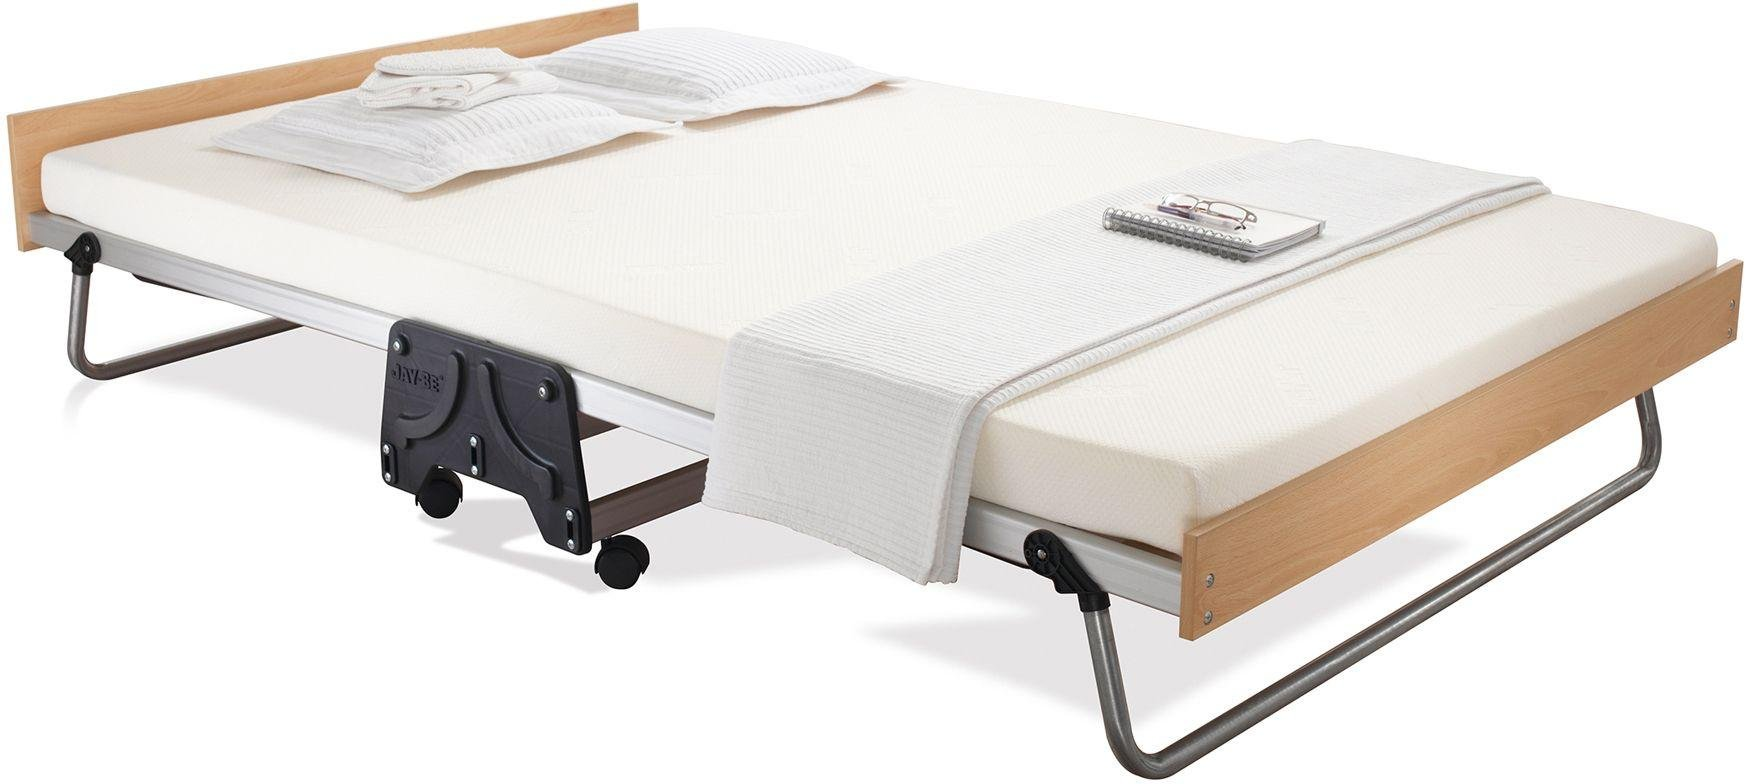 jaybe jbed folding guest bed small double